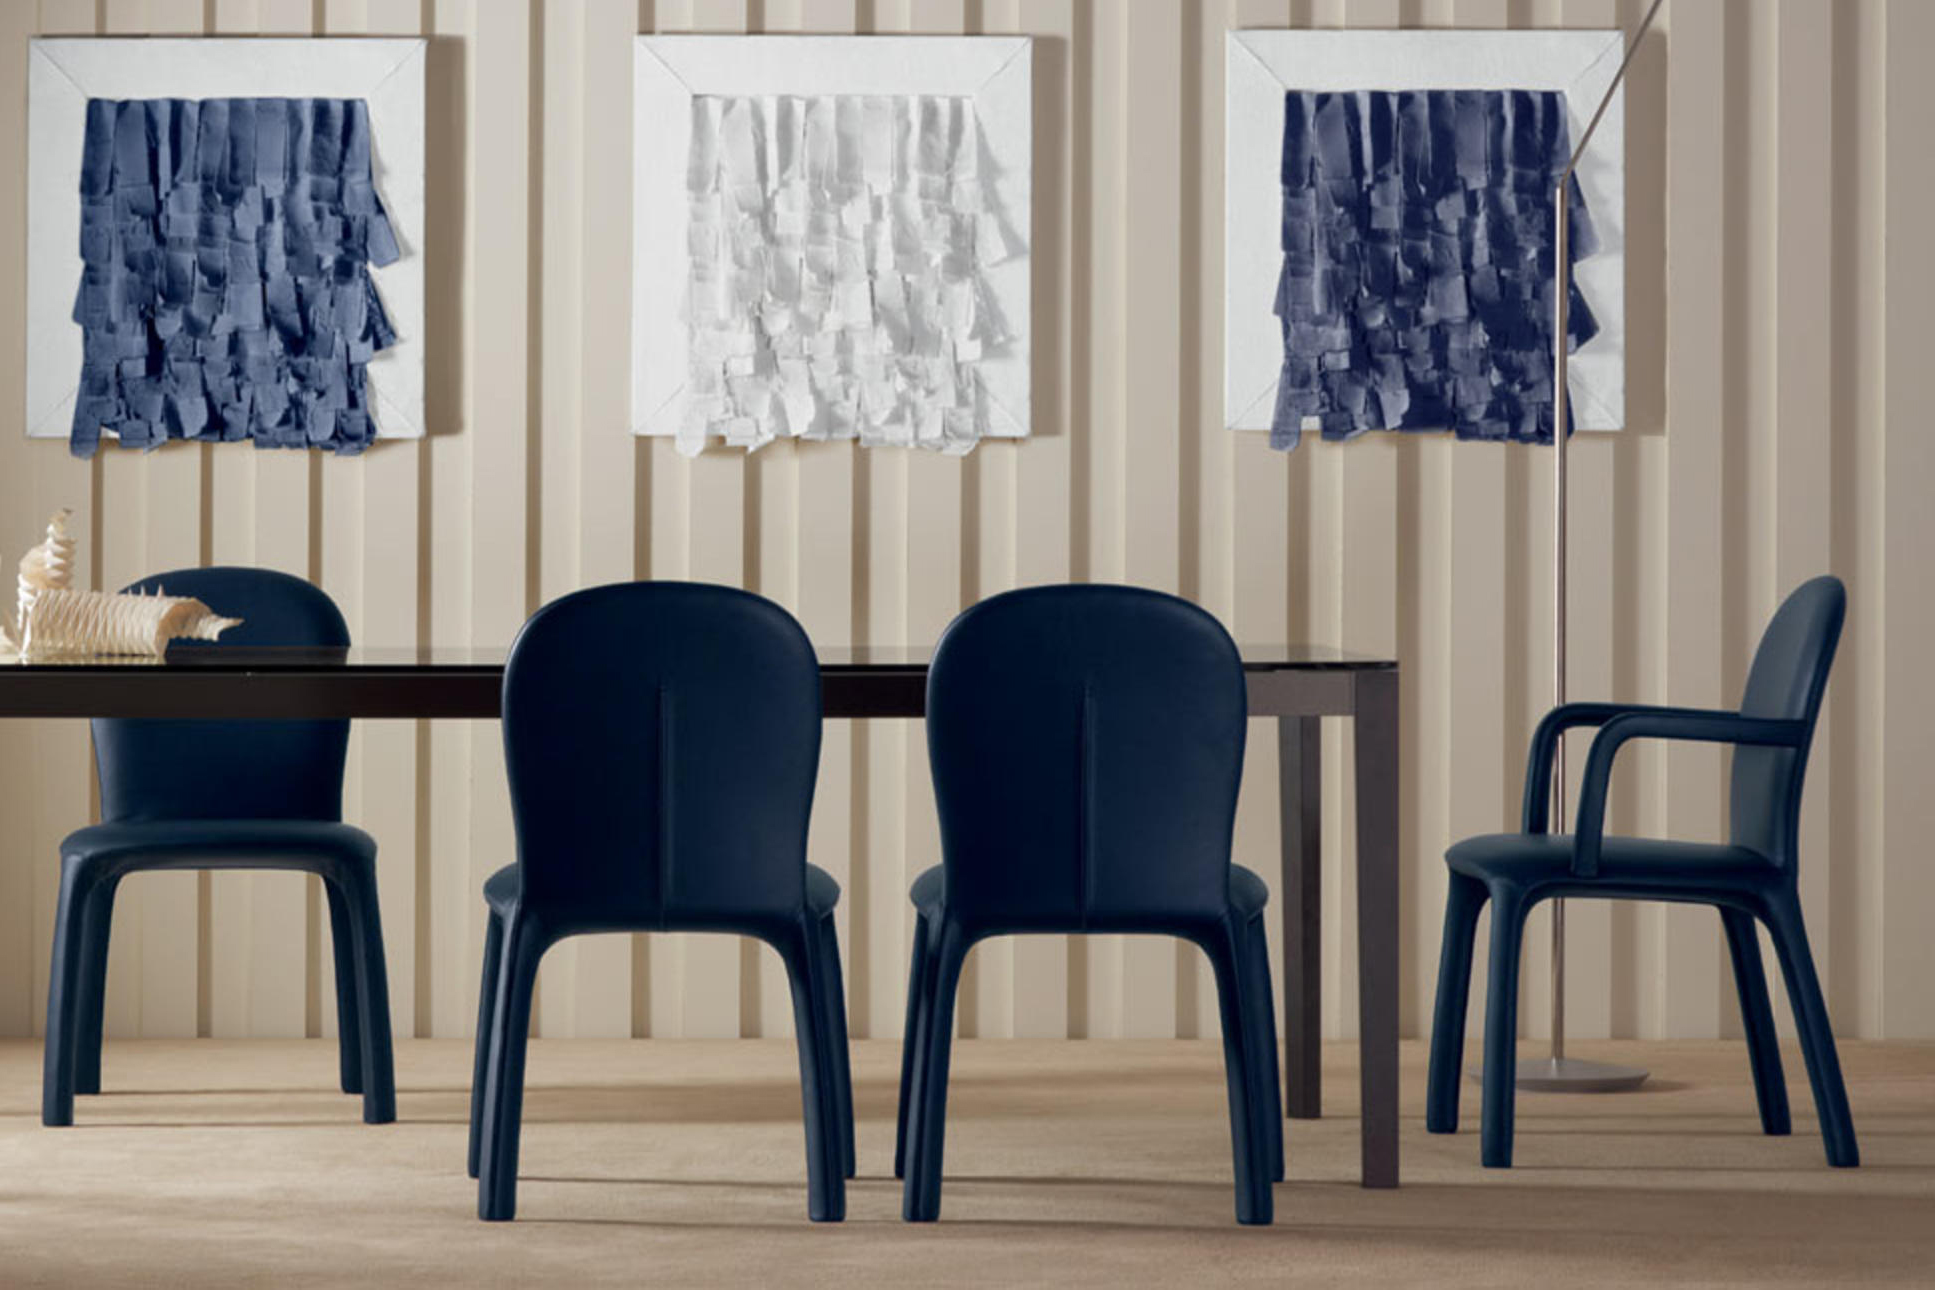 Top 10 Modern Dining Chairs to Place around Any Dining Table by Poltrona Frau dining chairs Top 10 Dining Chairs to Place around Any Dining Table Top 10 Modern Dining Chairs to Place around Any Dining Table by Poltrona Frau